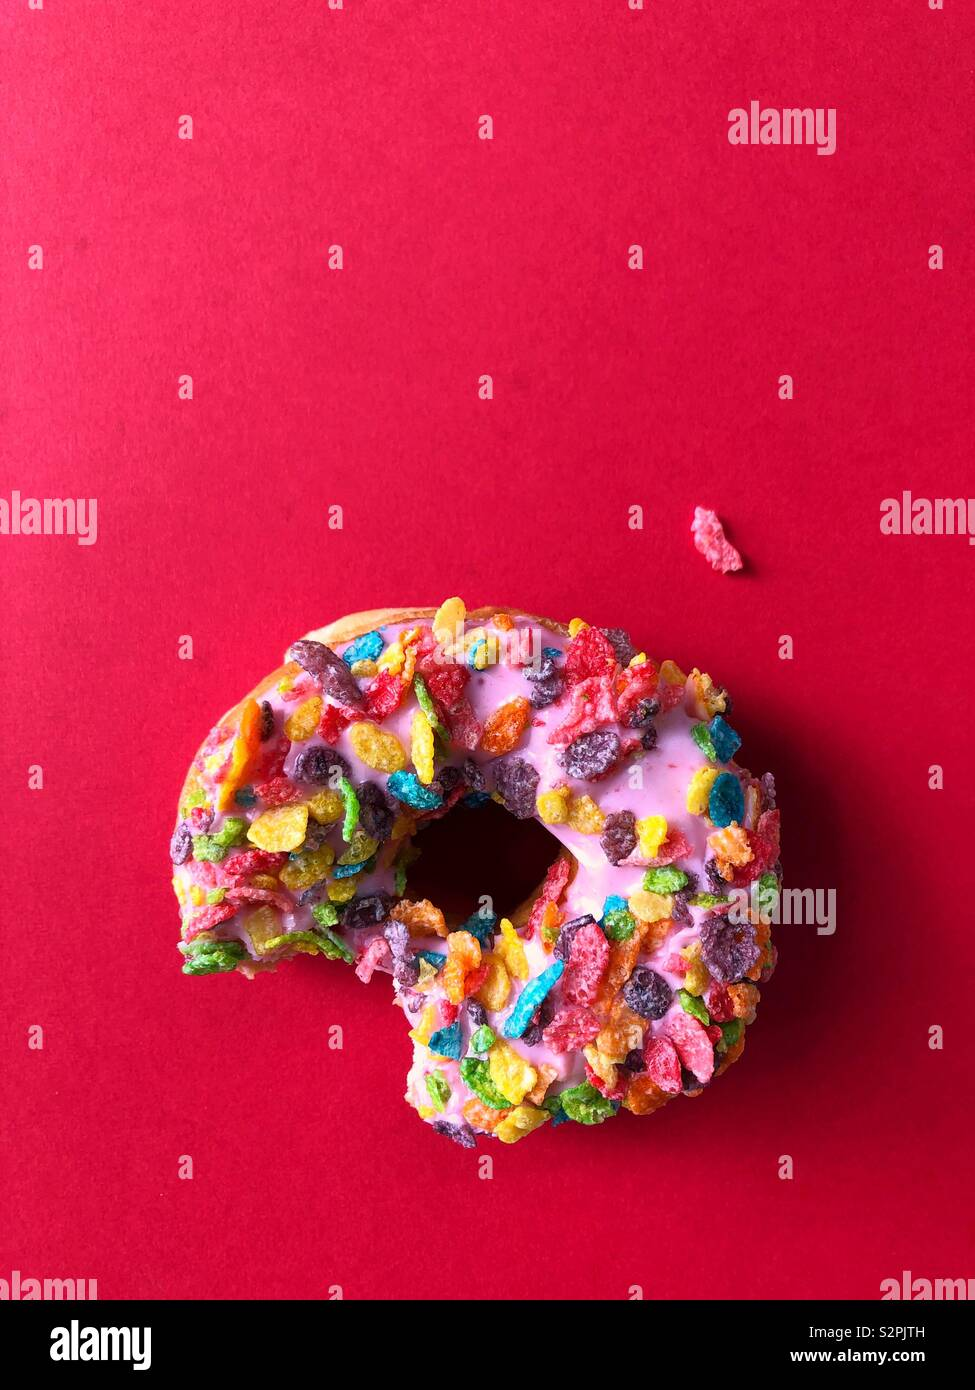 Fruity Cereal Stock Photos & Fruity Cereal Stock Images - Alamy